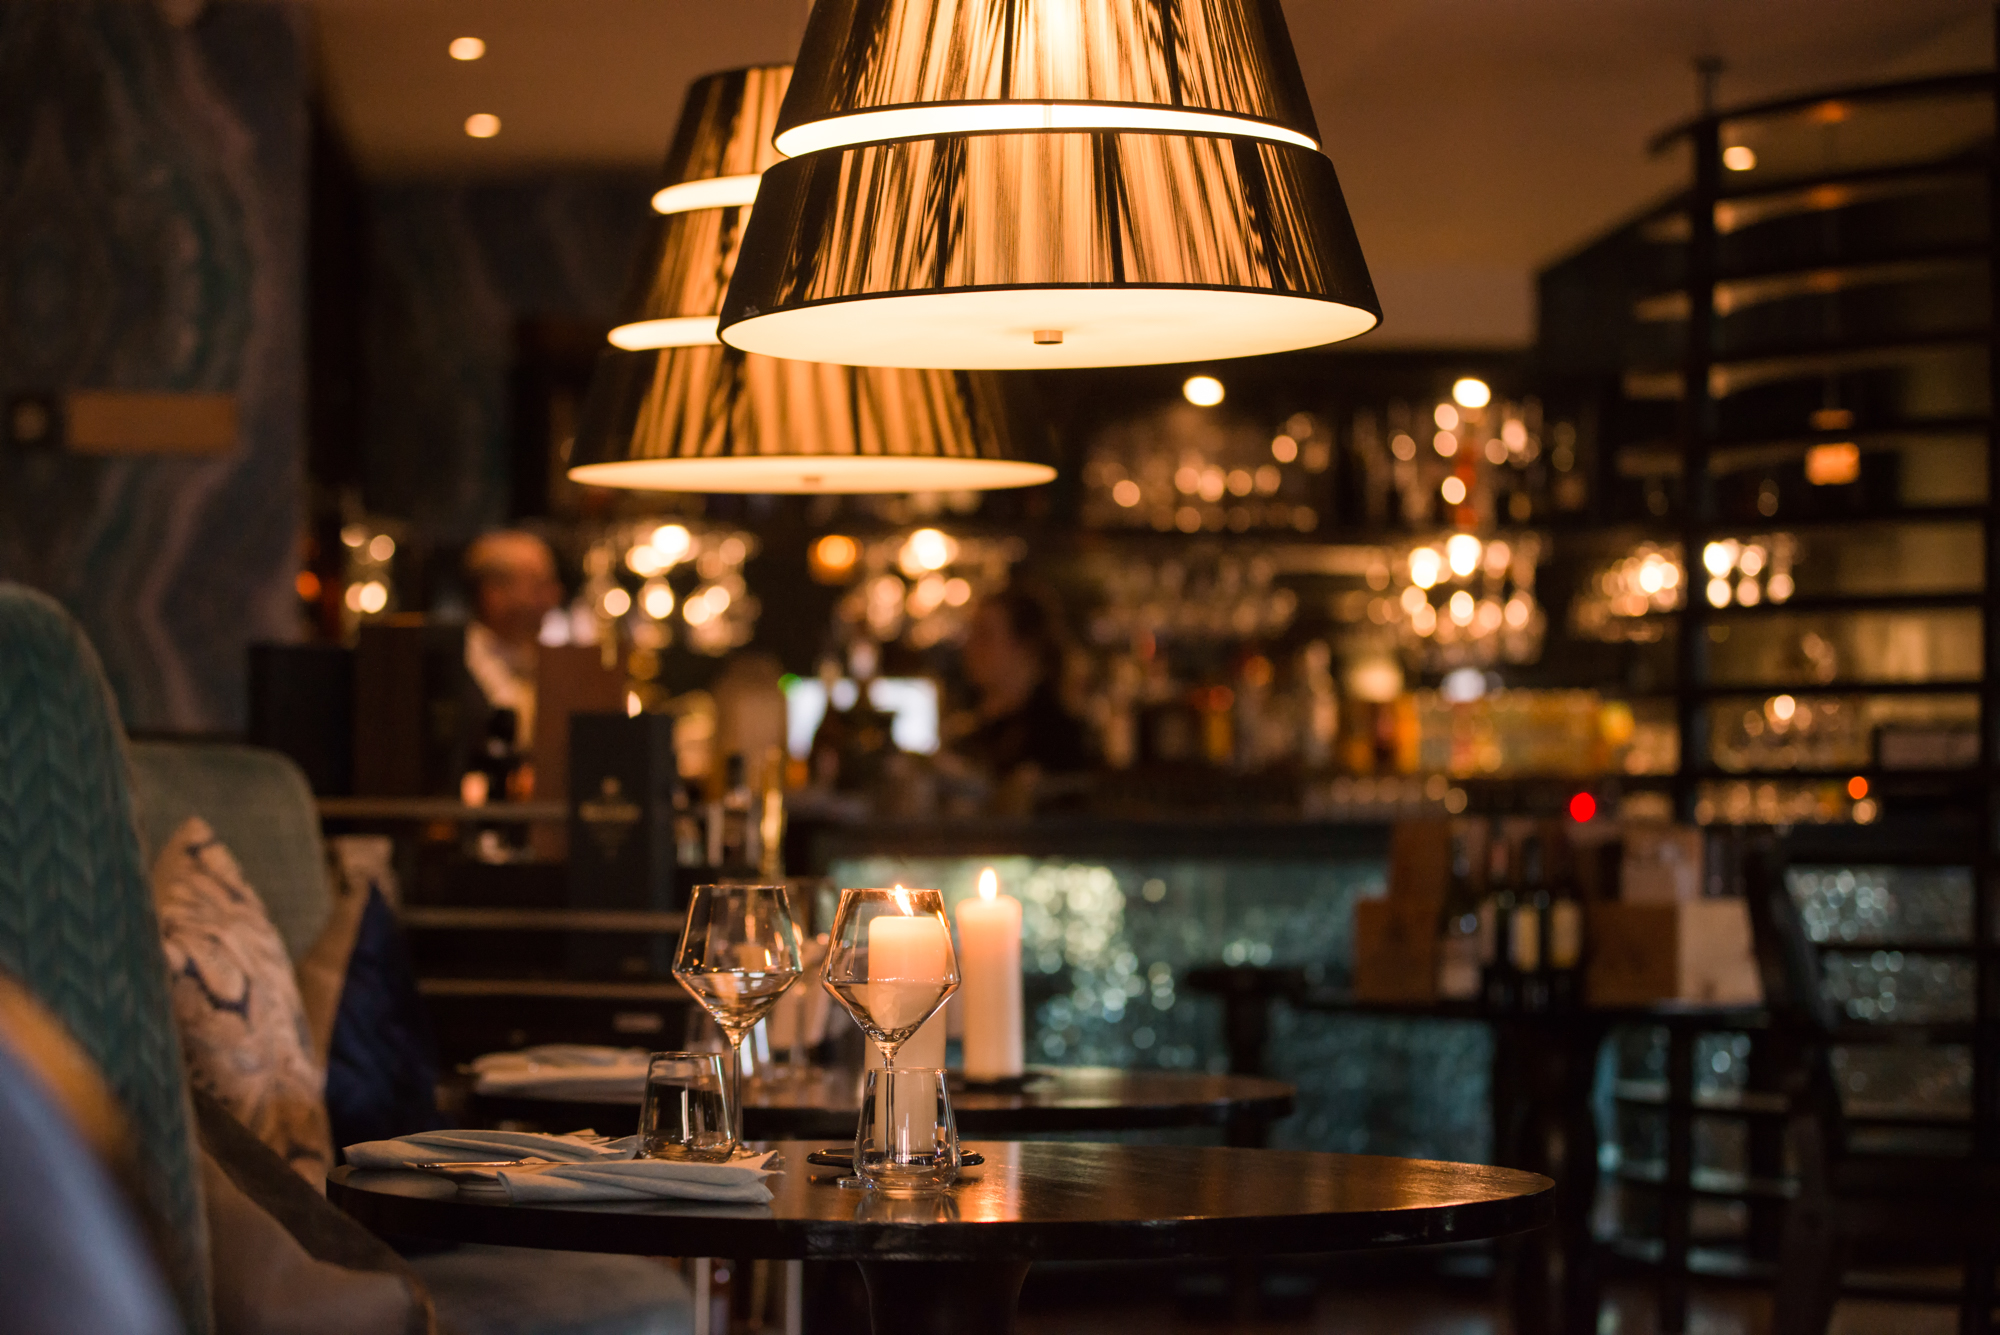 - Have your special events with friends and family at one of the top restaurants in Galway.